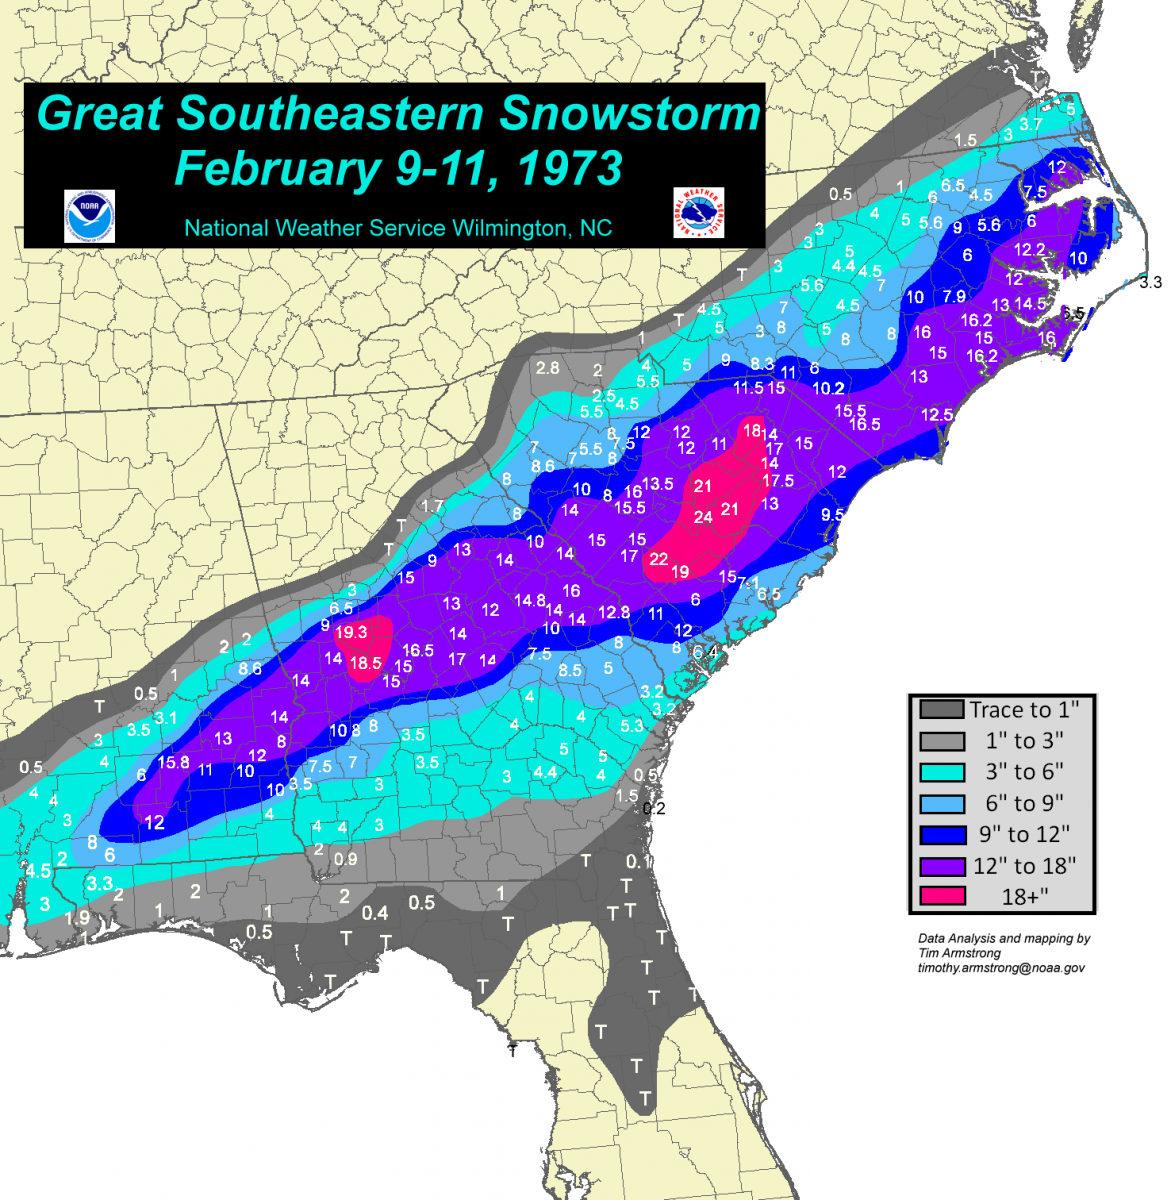 Snow Storm Weather Map.The Great Southeastern Snowstorm February 9 11 1973